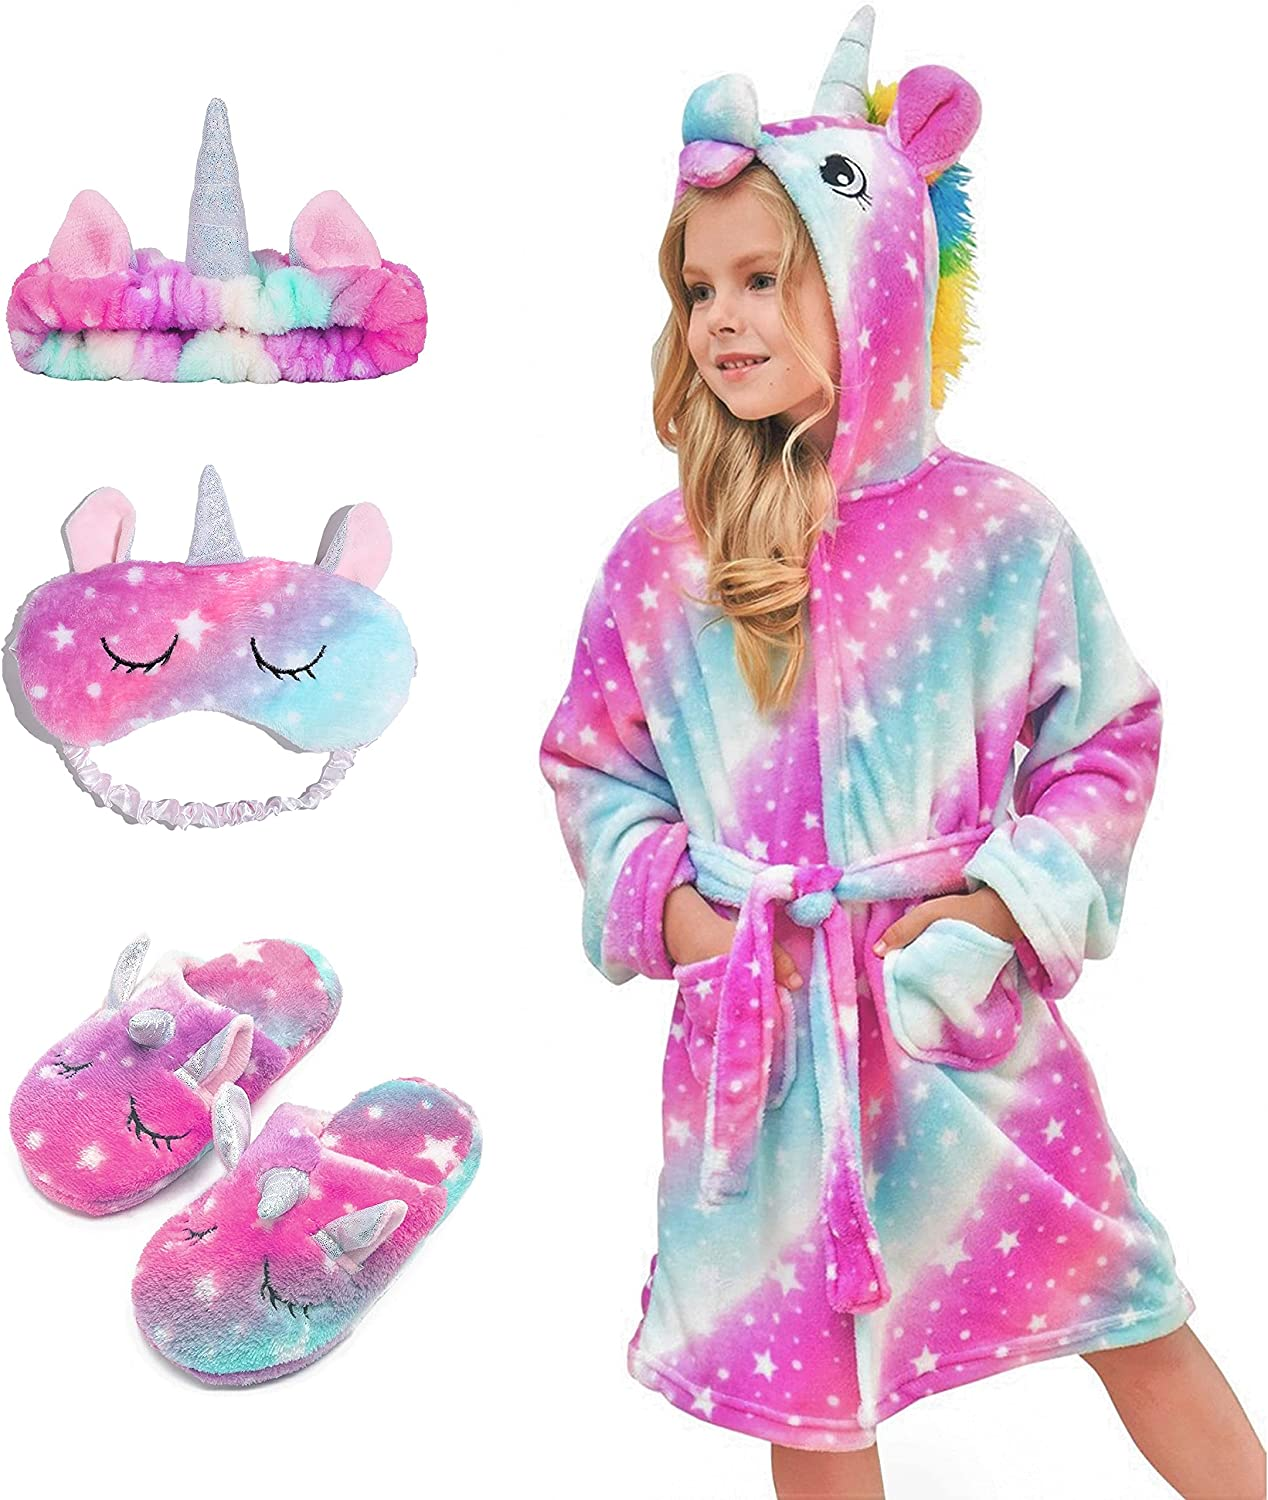 HulovoX Unicorn Hooded Bathrobe Slippers with Industry No. 1 Trust Matching